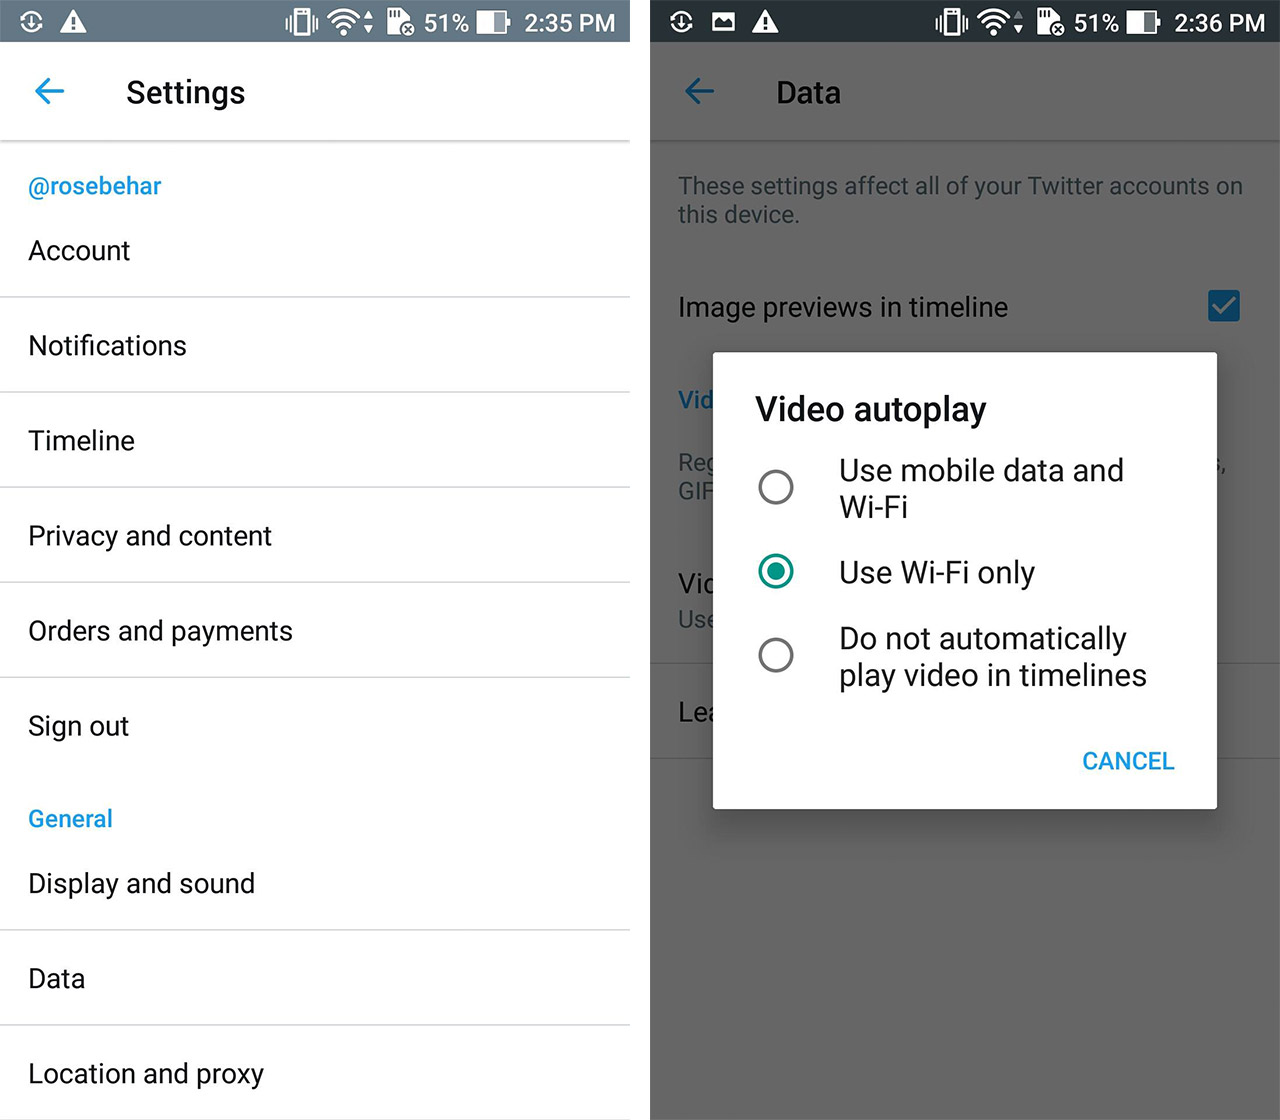 twitter autoplay screen shots - save data